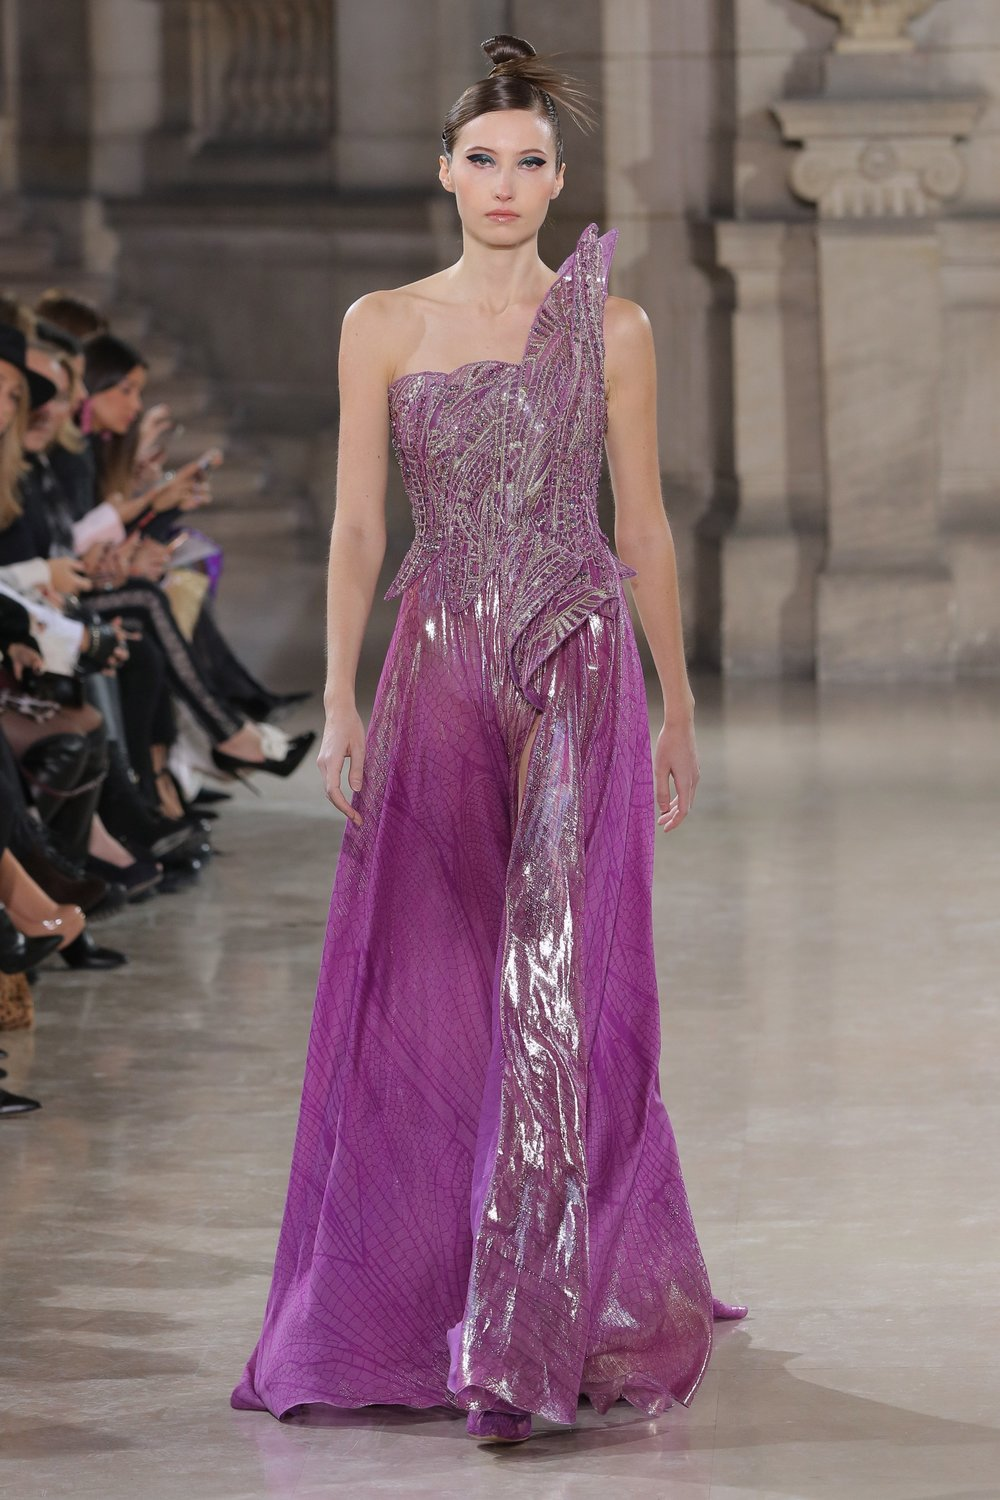 TONY_WARD_COUTURE_SS19_7.jpg